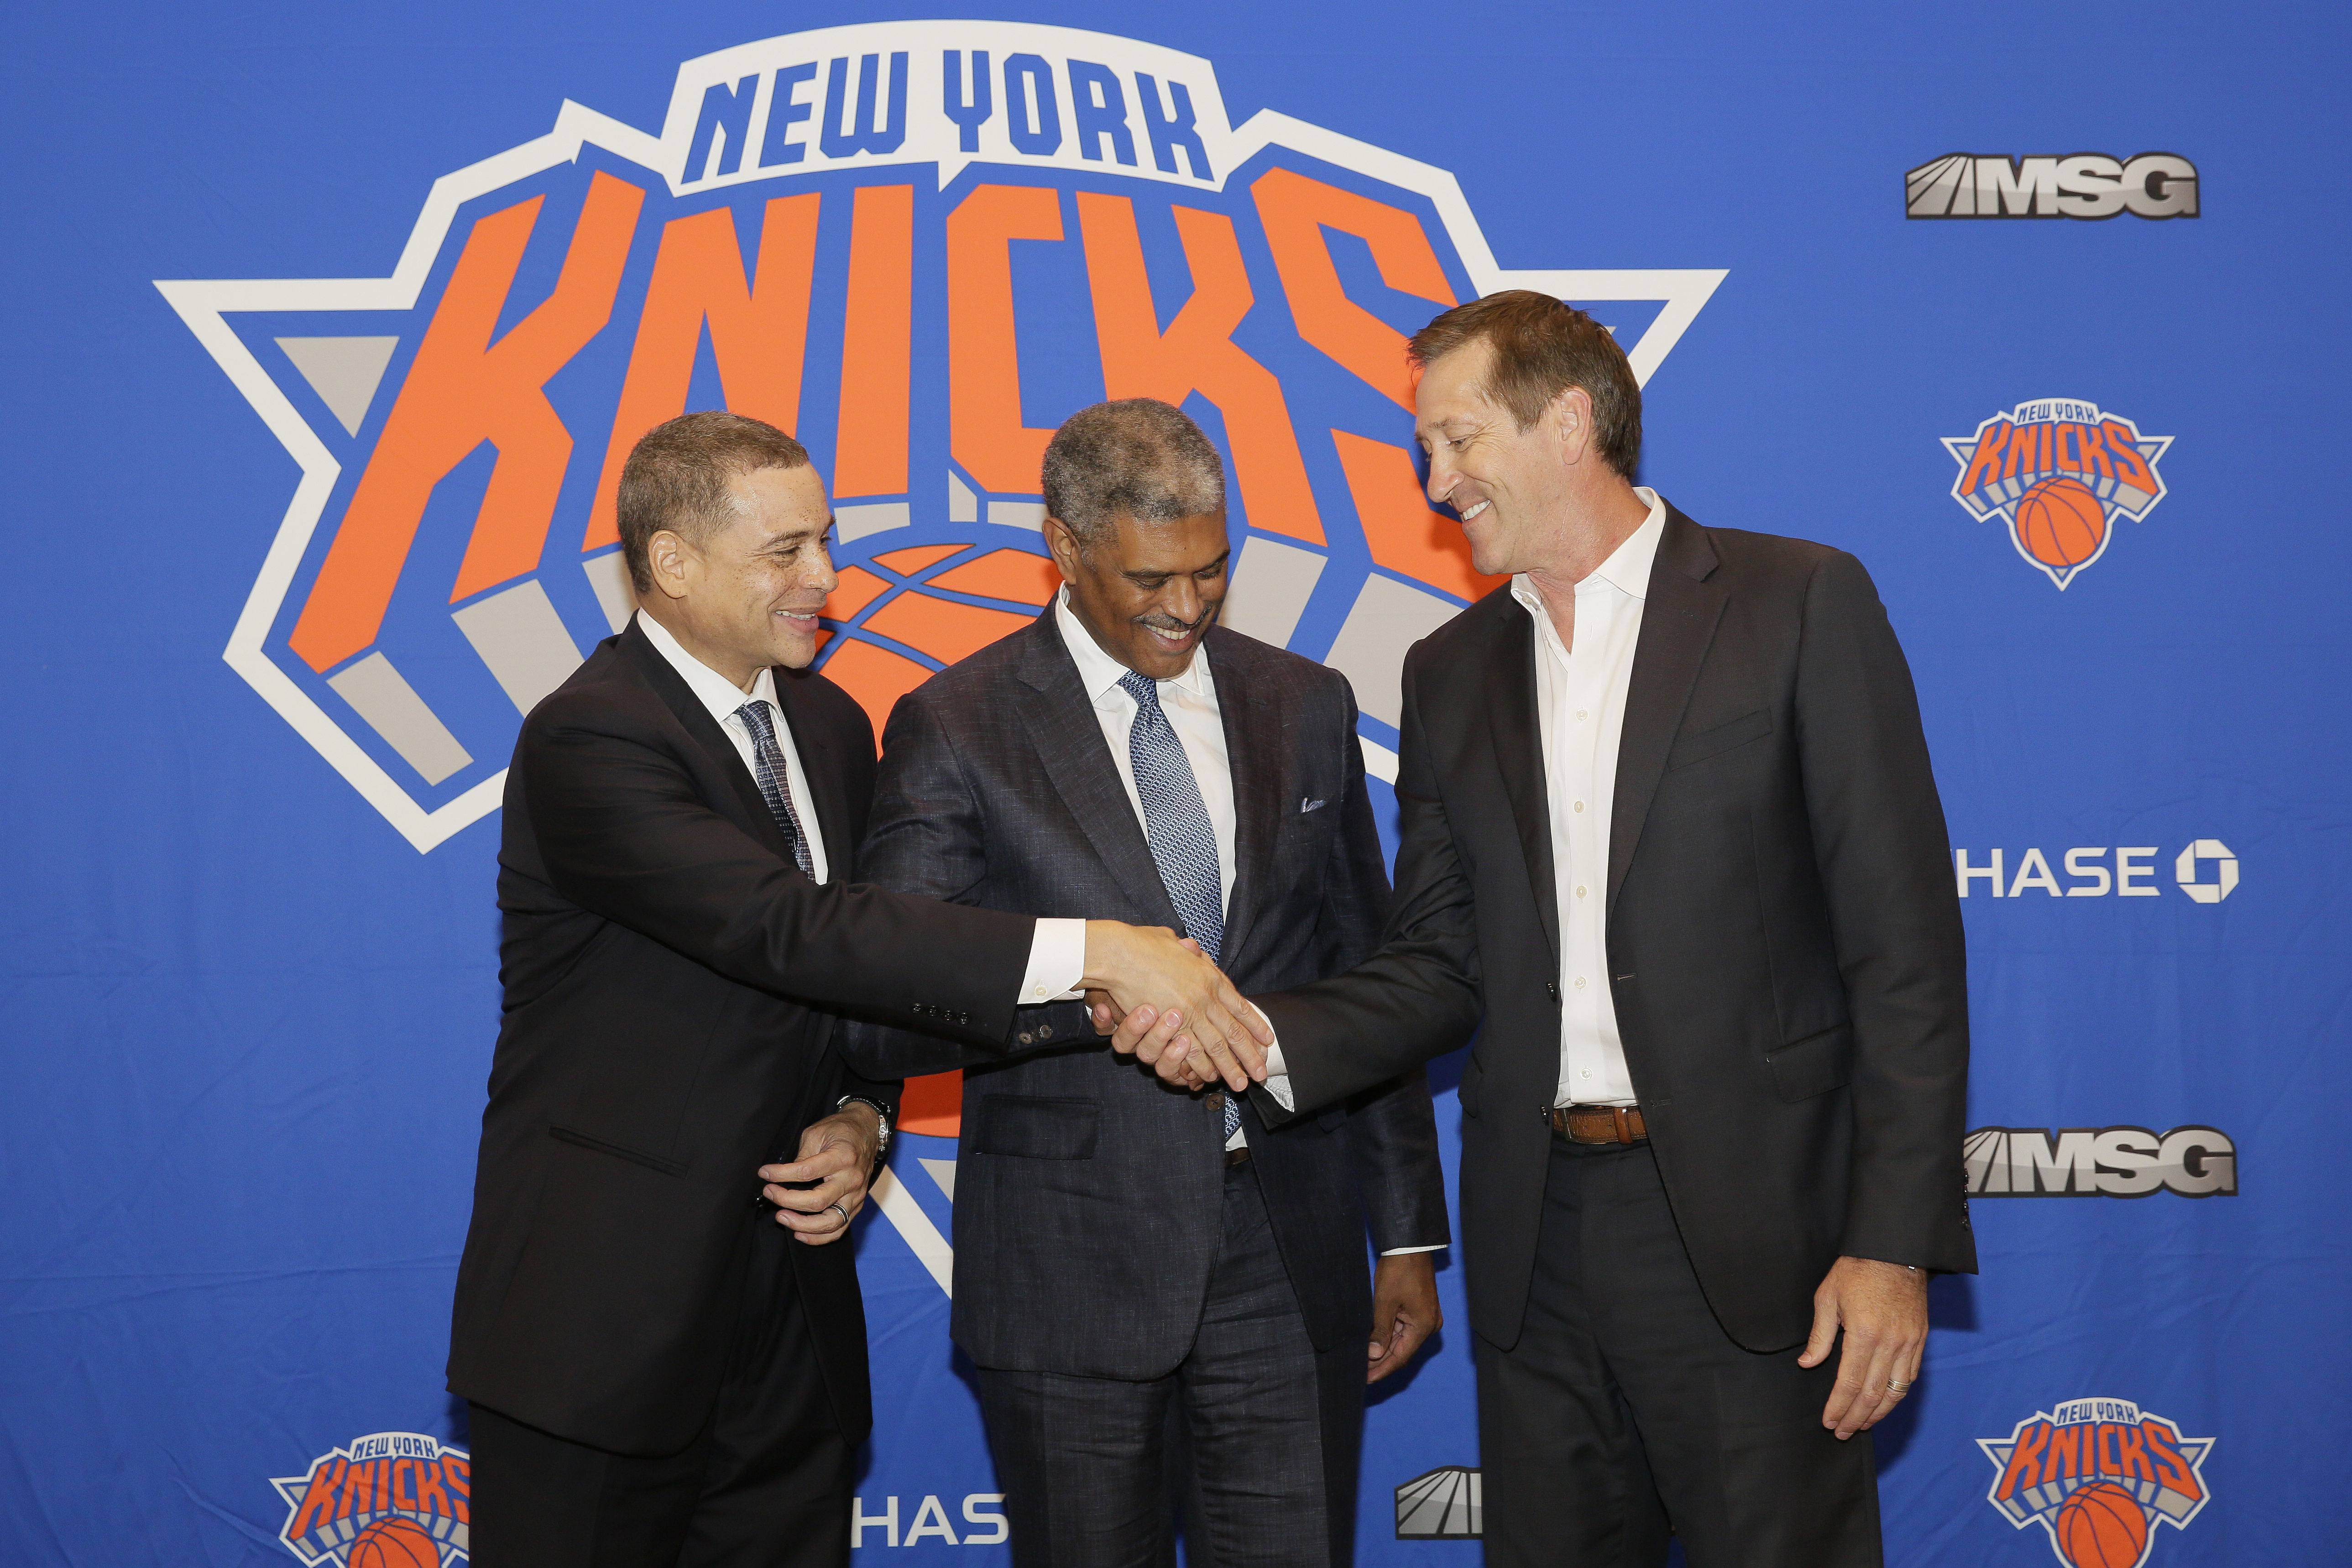 Knicks rookie Frank Ntilikina (ankle) expected to play Friday